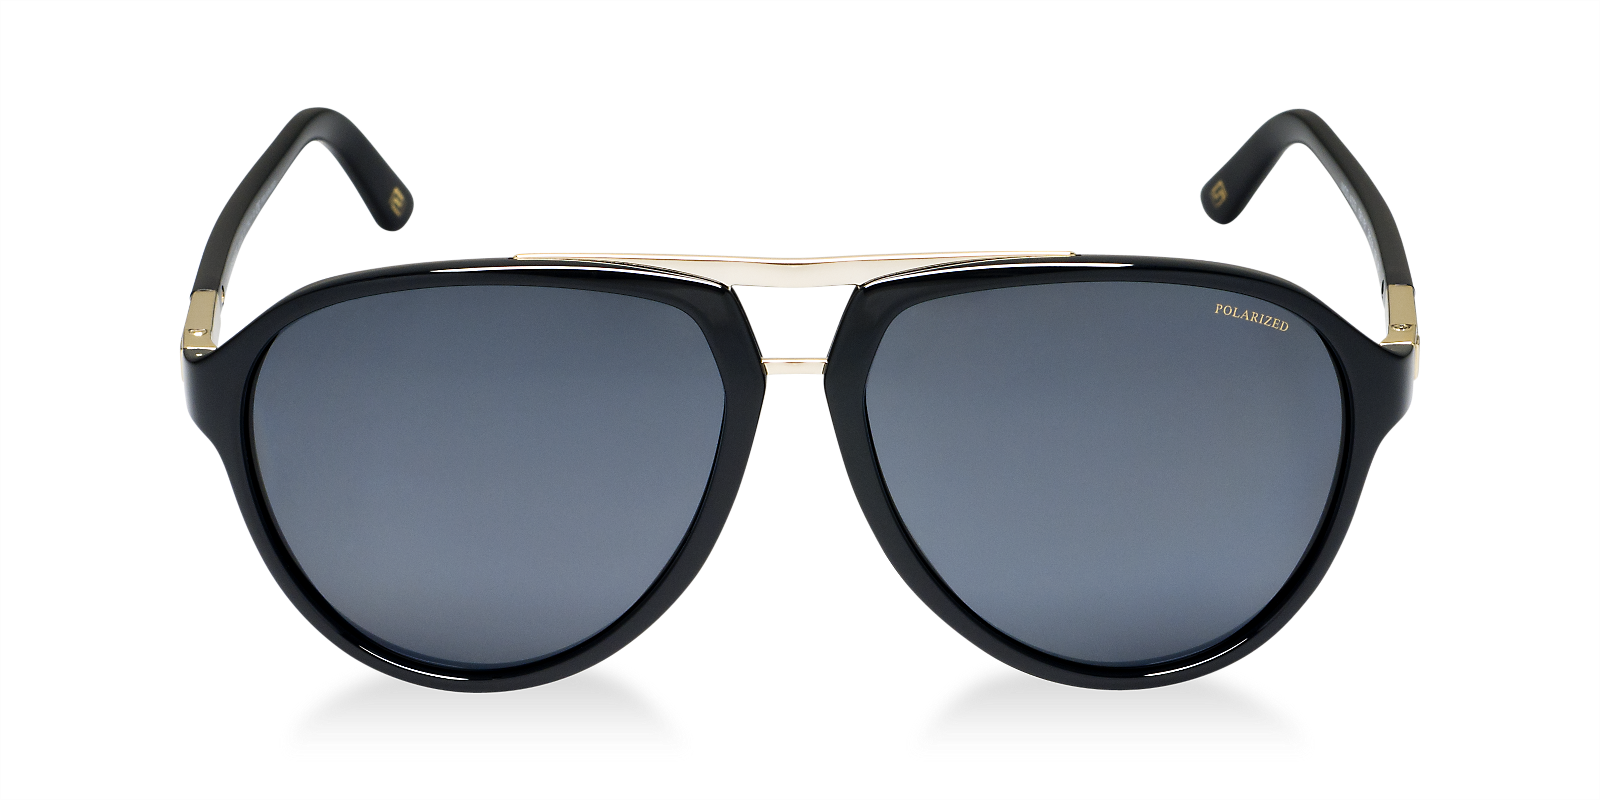 VE4223 Sunglasses Are A Sleek Option For The Spring Season. Cheers image #605